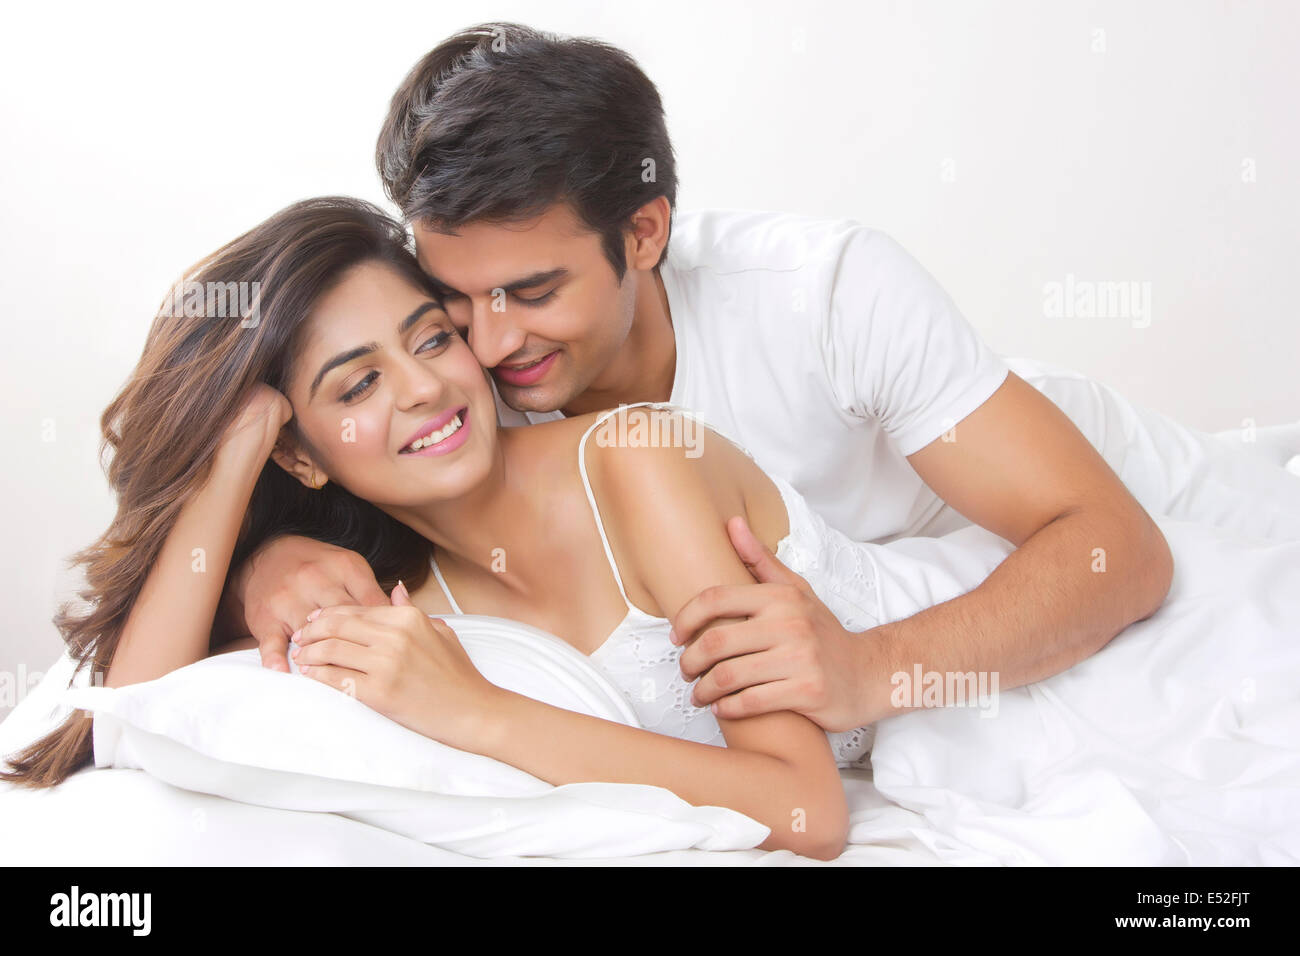 Romantic young couple in bedroom - Stock Image